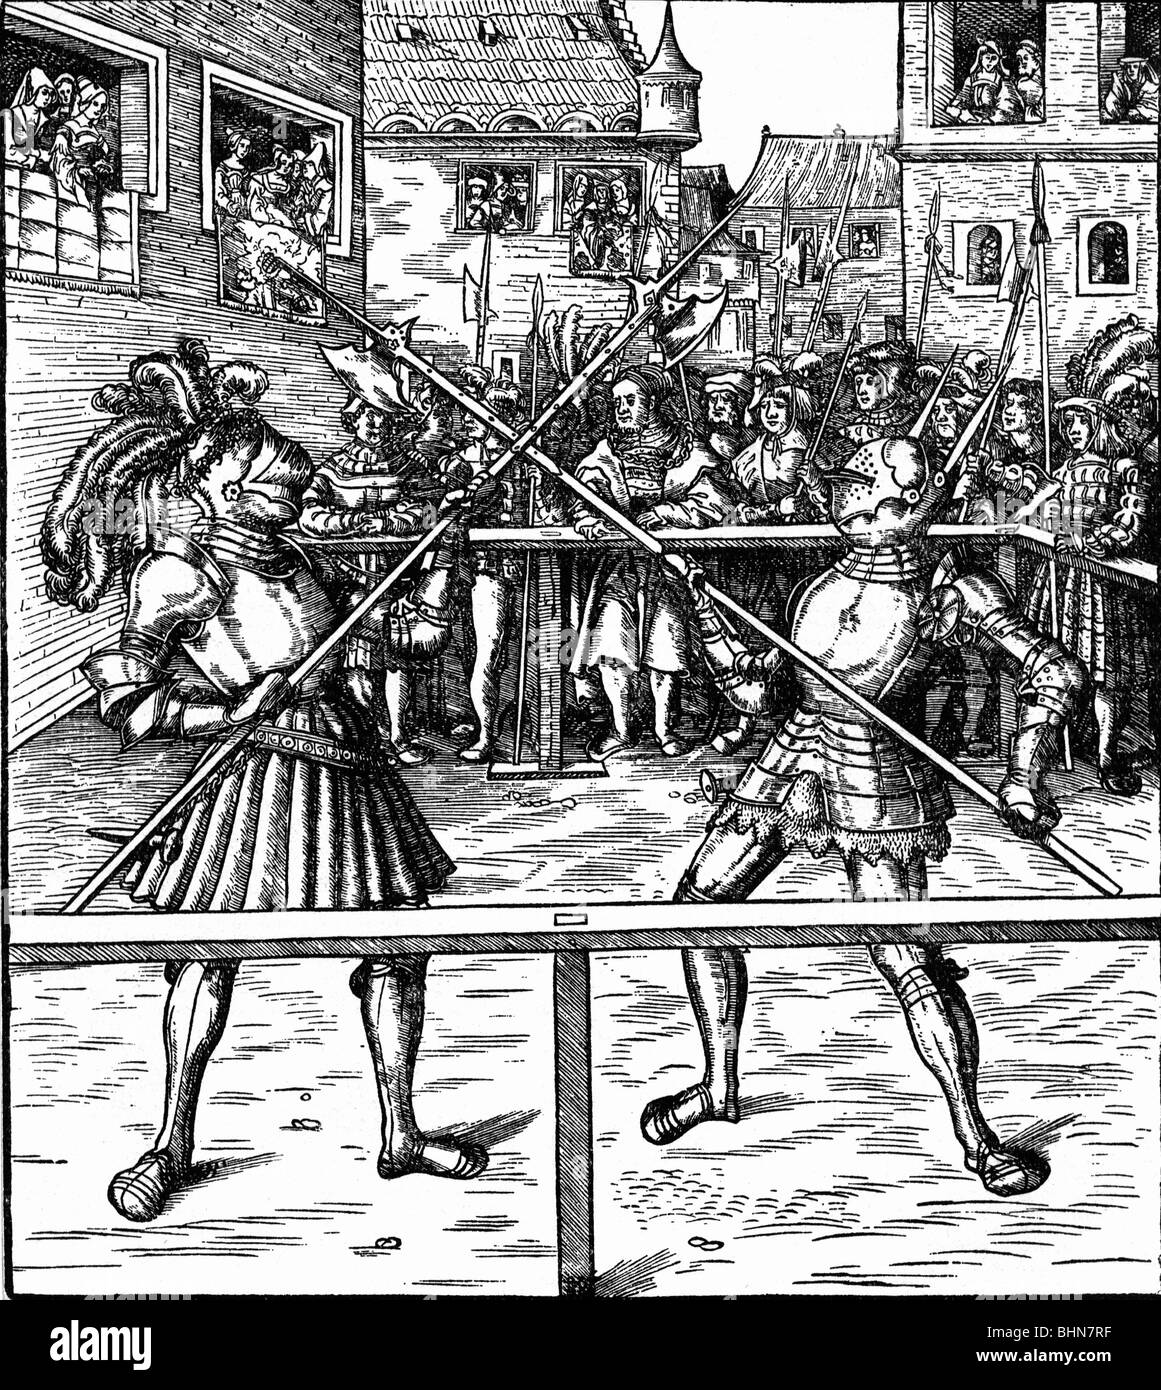 middle ages, knights, tournament, combat with halberds, woodcut by Hans Burgkmair to 'Freydal', by emperor - Stock Image